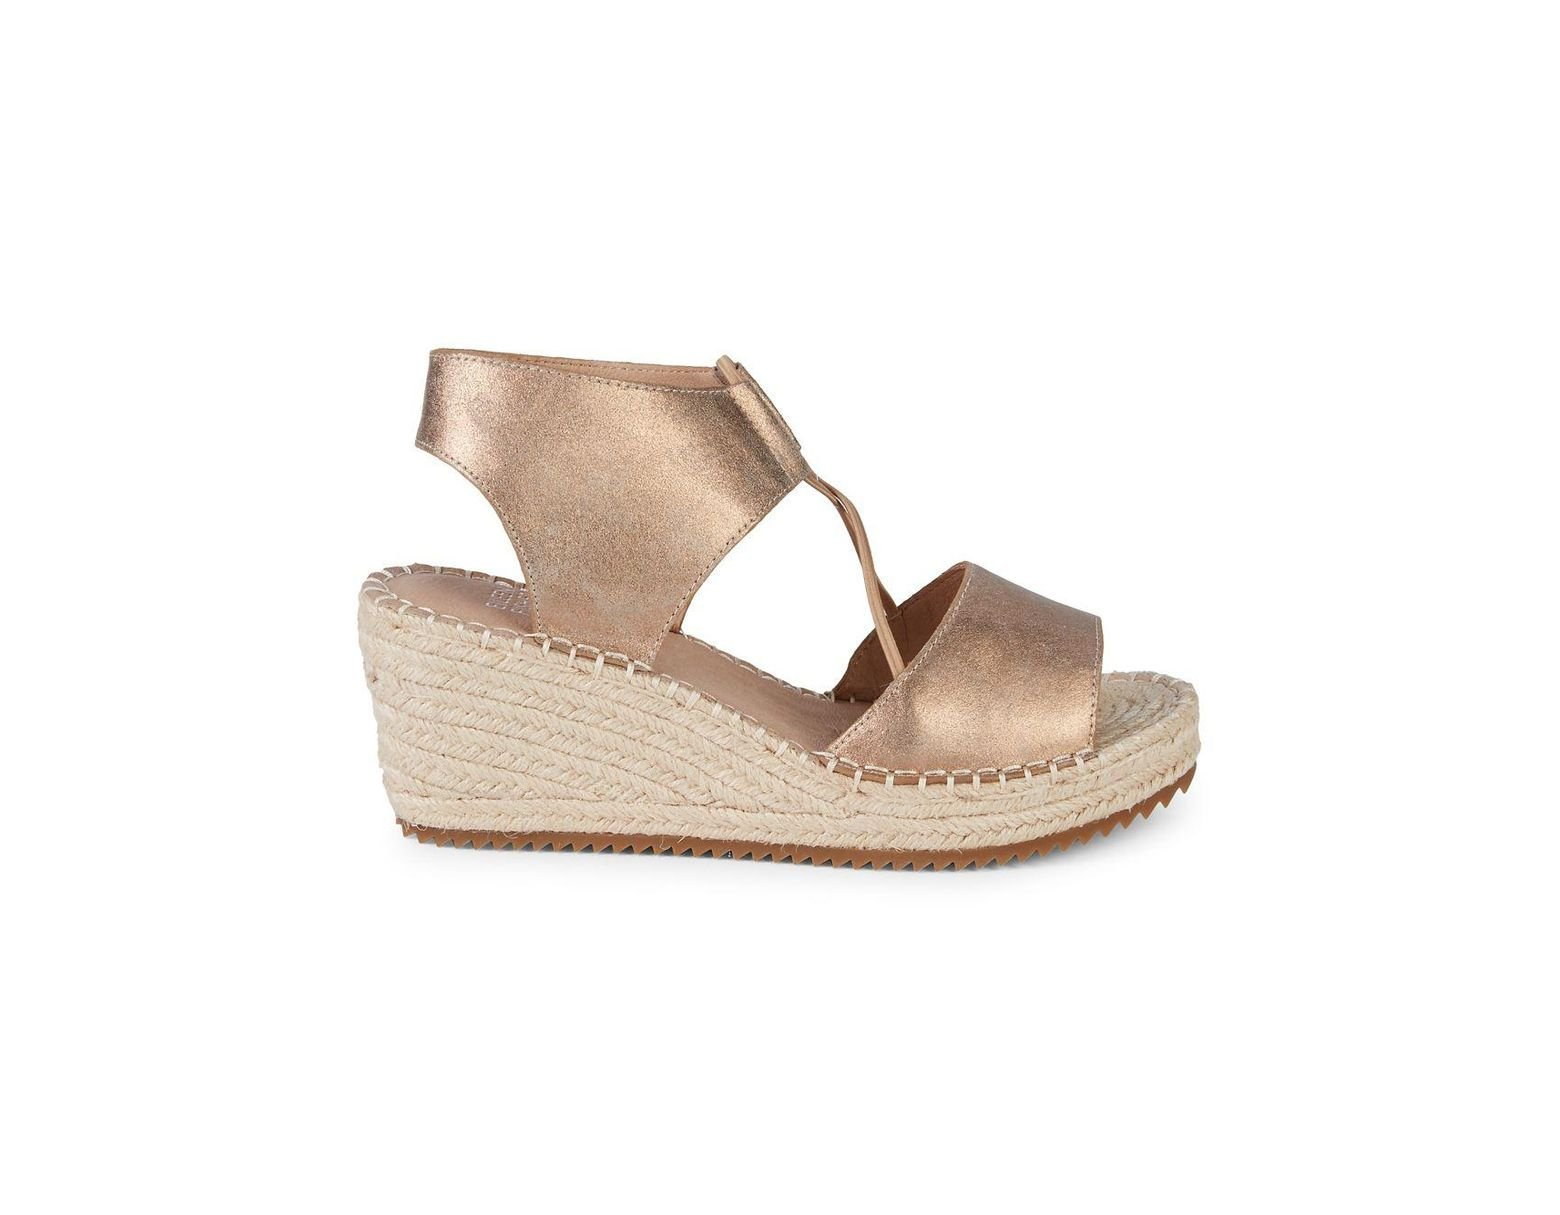 fb7eb2f0a Eileen Fisher Agnes Metallic Suede Espadrille Wedge Sandals in Metallic -  Save 53% - Lyst